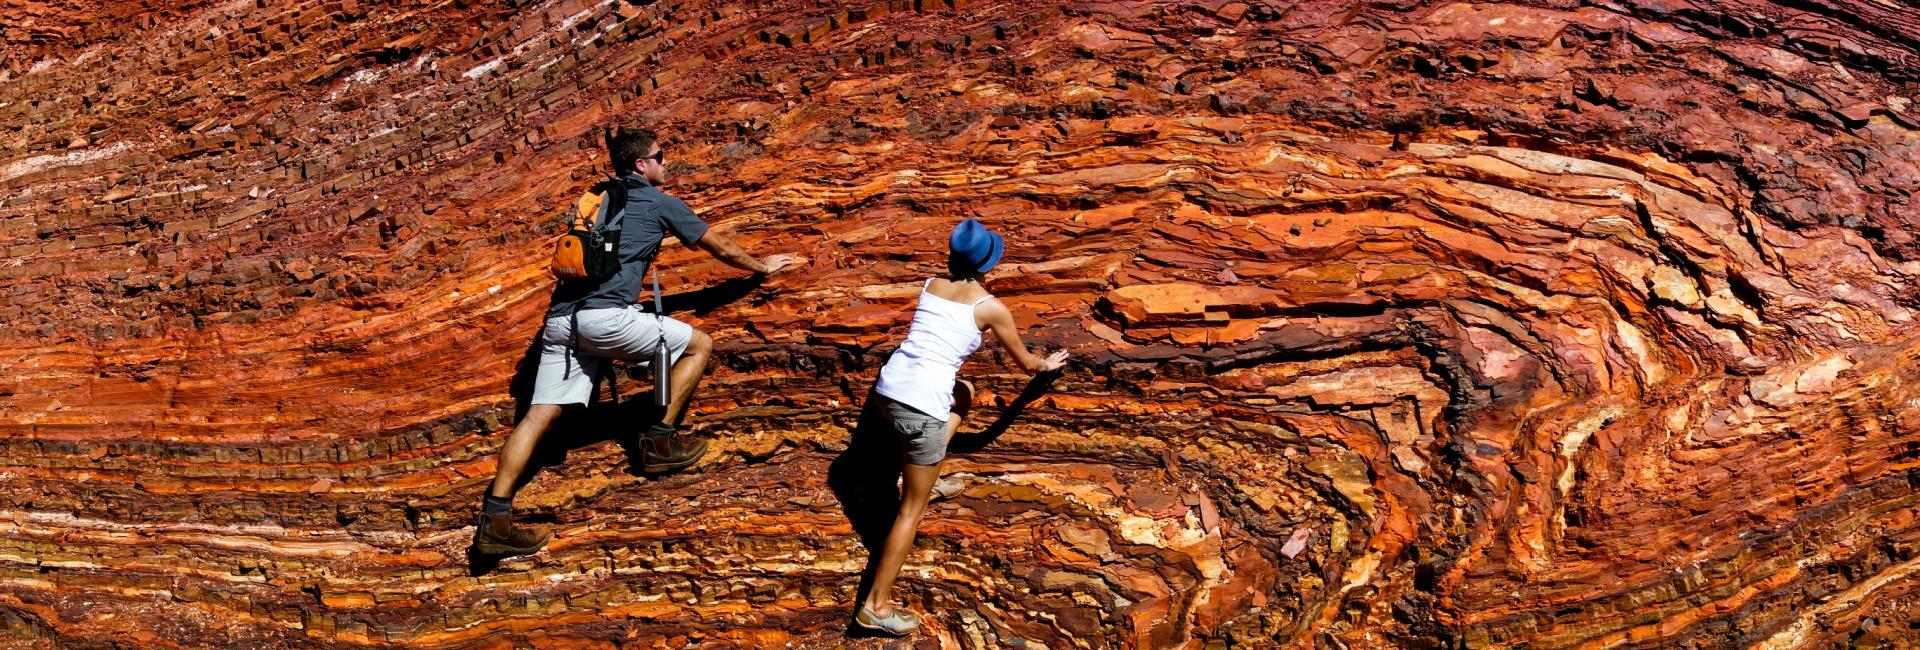 Couple climbing rock wall in Karijini National Park.